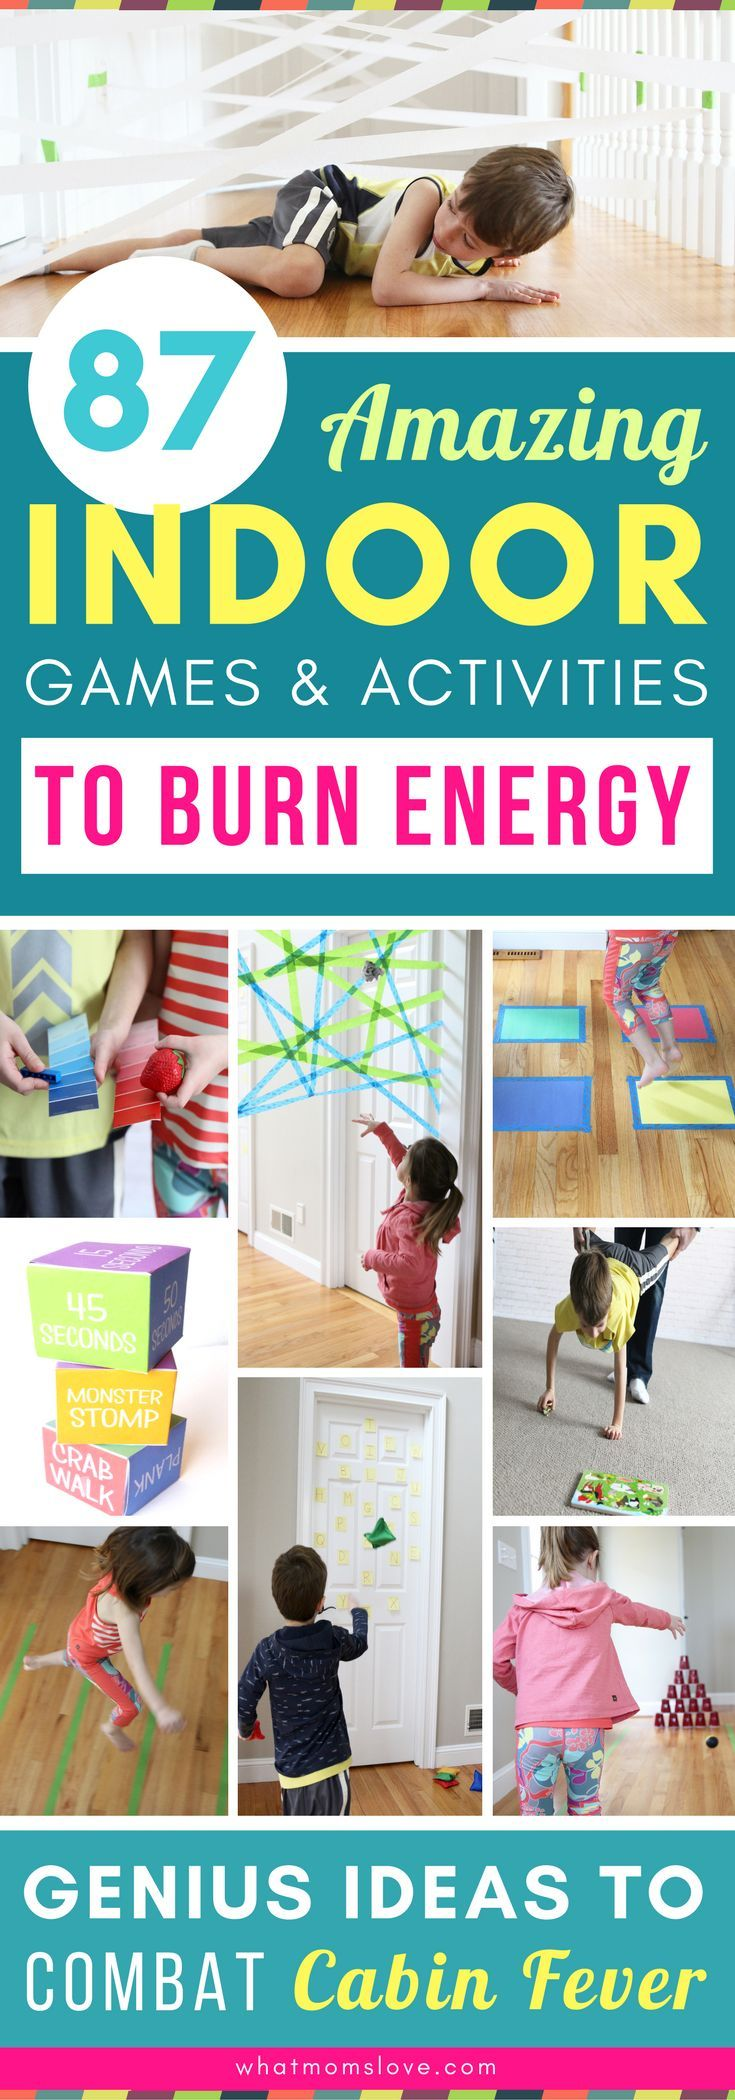 Wow! These fun and easy indoor activities for kids are genius! Tons of DIY creative games and gross motor activities you can do at home in the winter on snow days or spring and summer on hot or rainy days - perfect for combatting cabin fever! Great boredom busters and brain breaks for toddlers, preschoolers, even tweens - both boys and girls. Includes obstacle courses, fun ideas with painters tape and so much more!